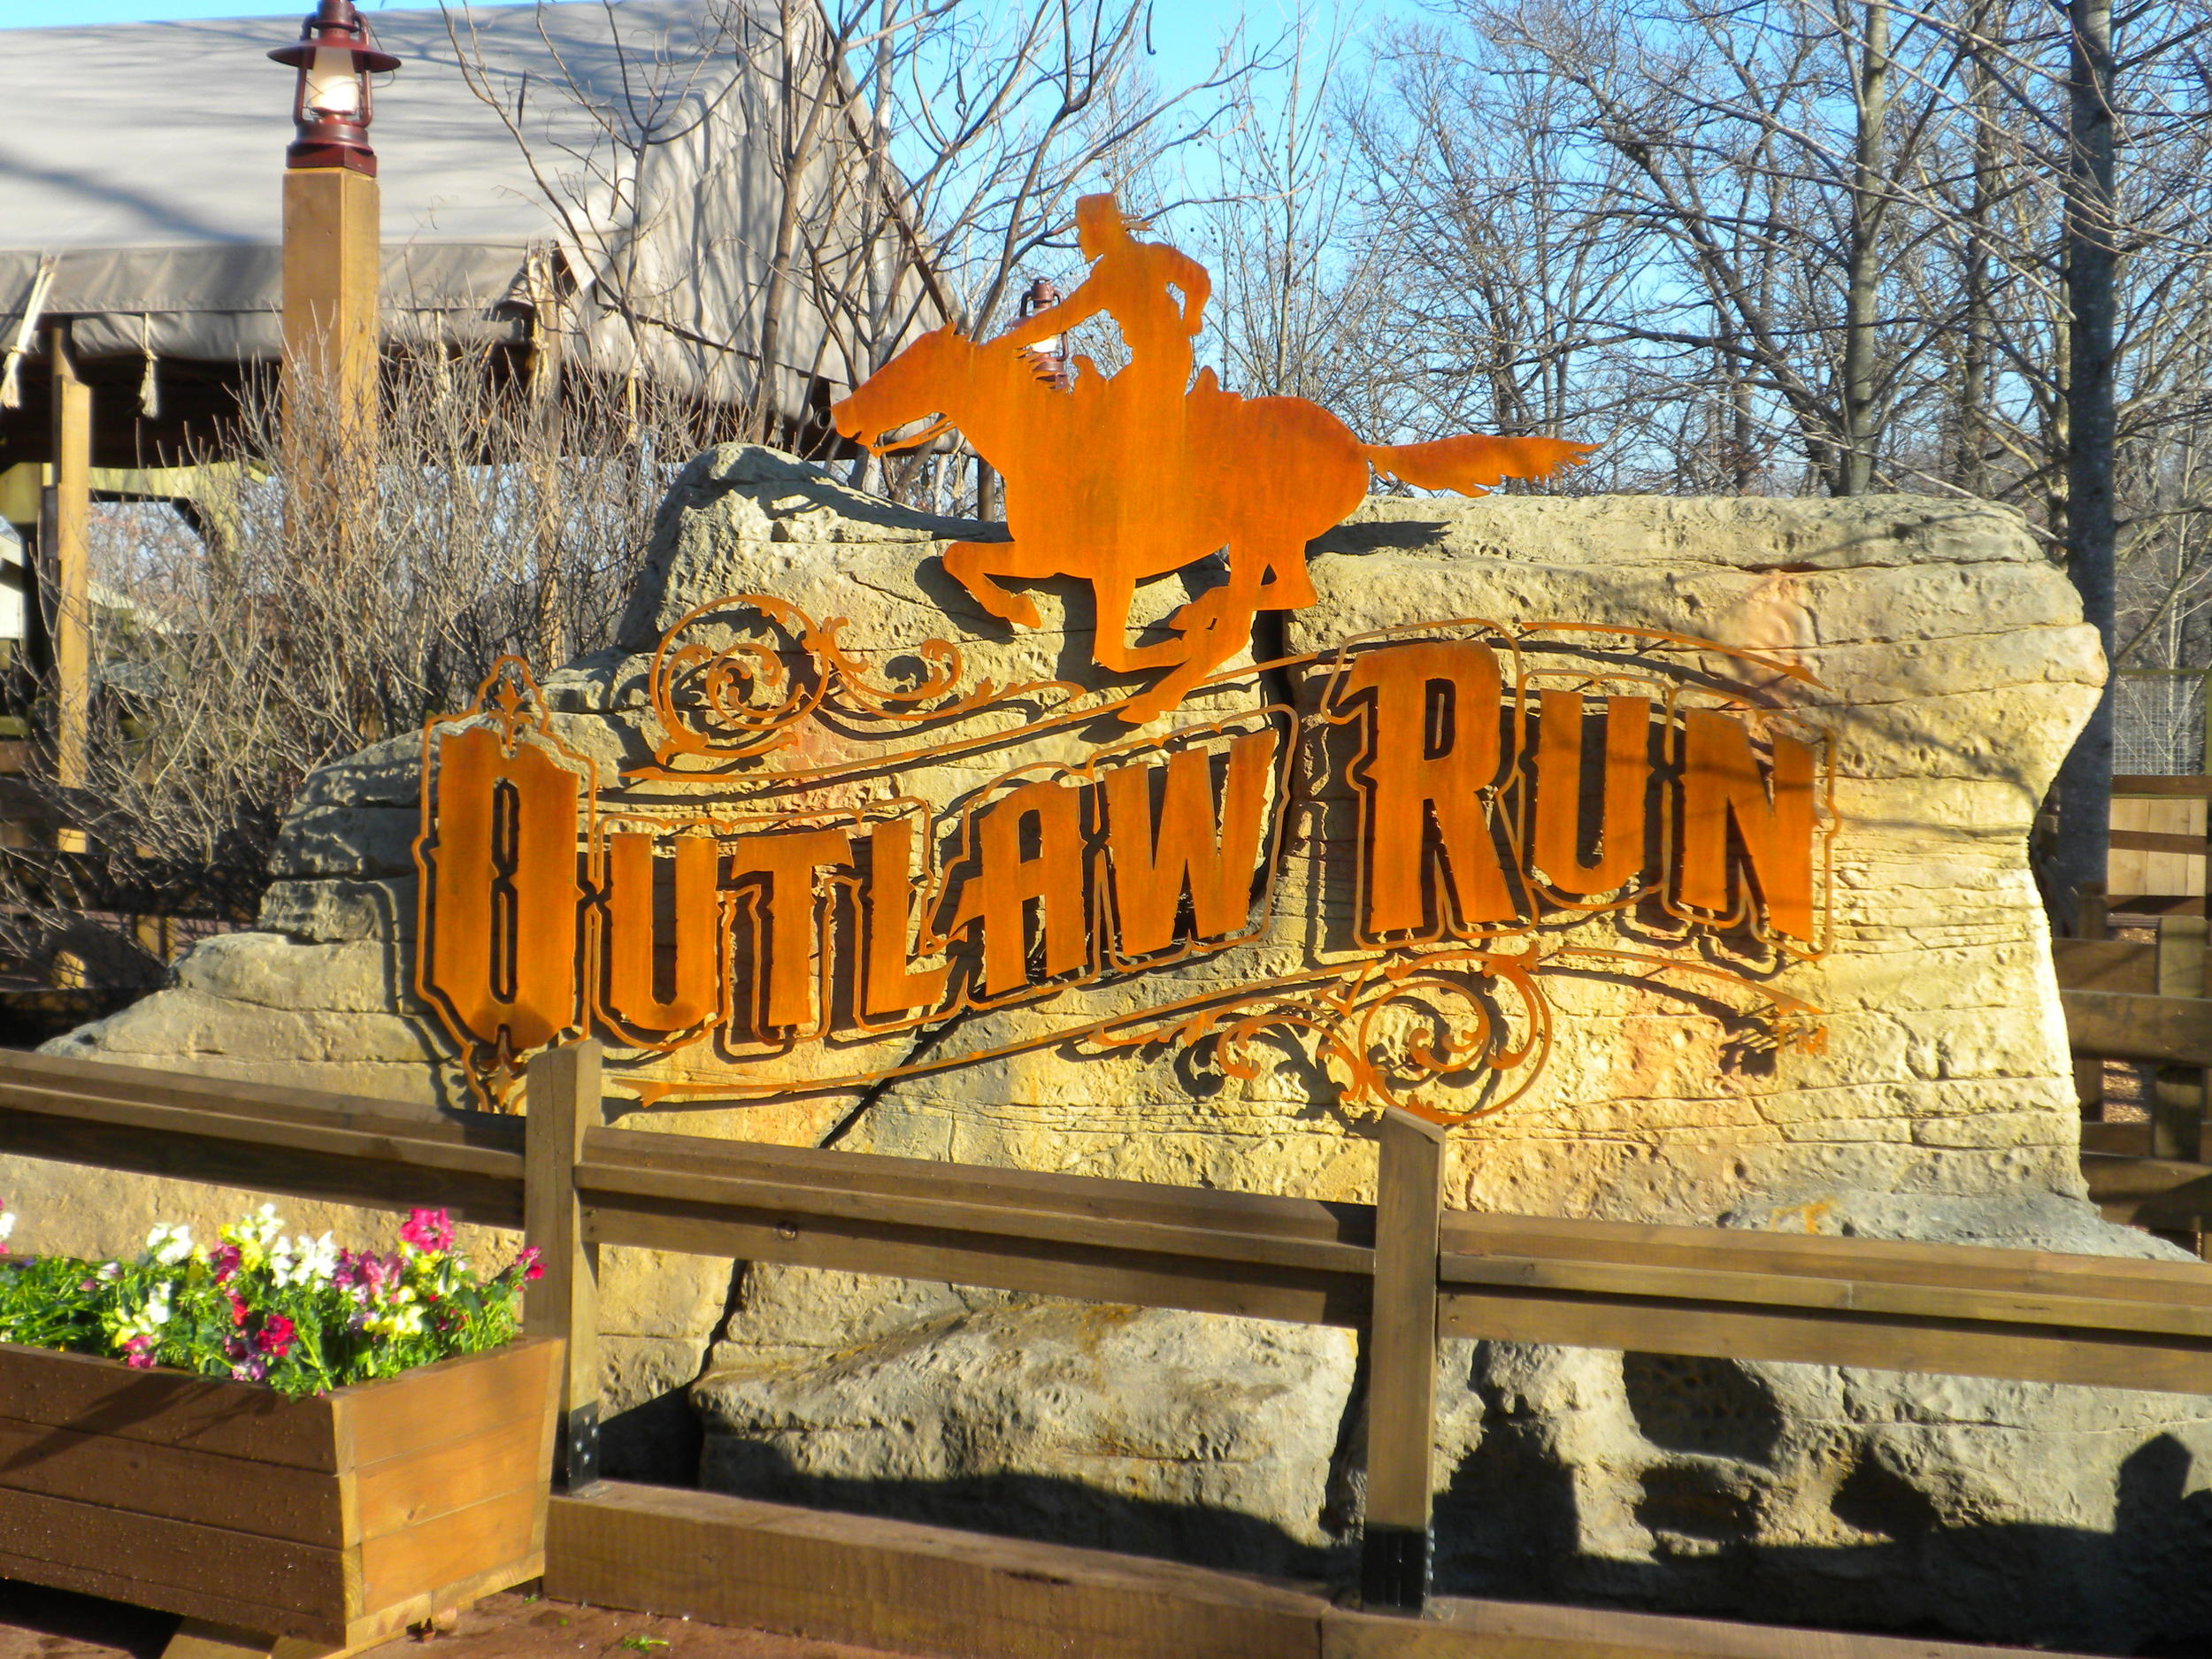 outlaw-run-roller-coaster-main-id-sign-metal-silver-dollar-city-branson-mo.jpg